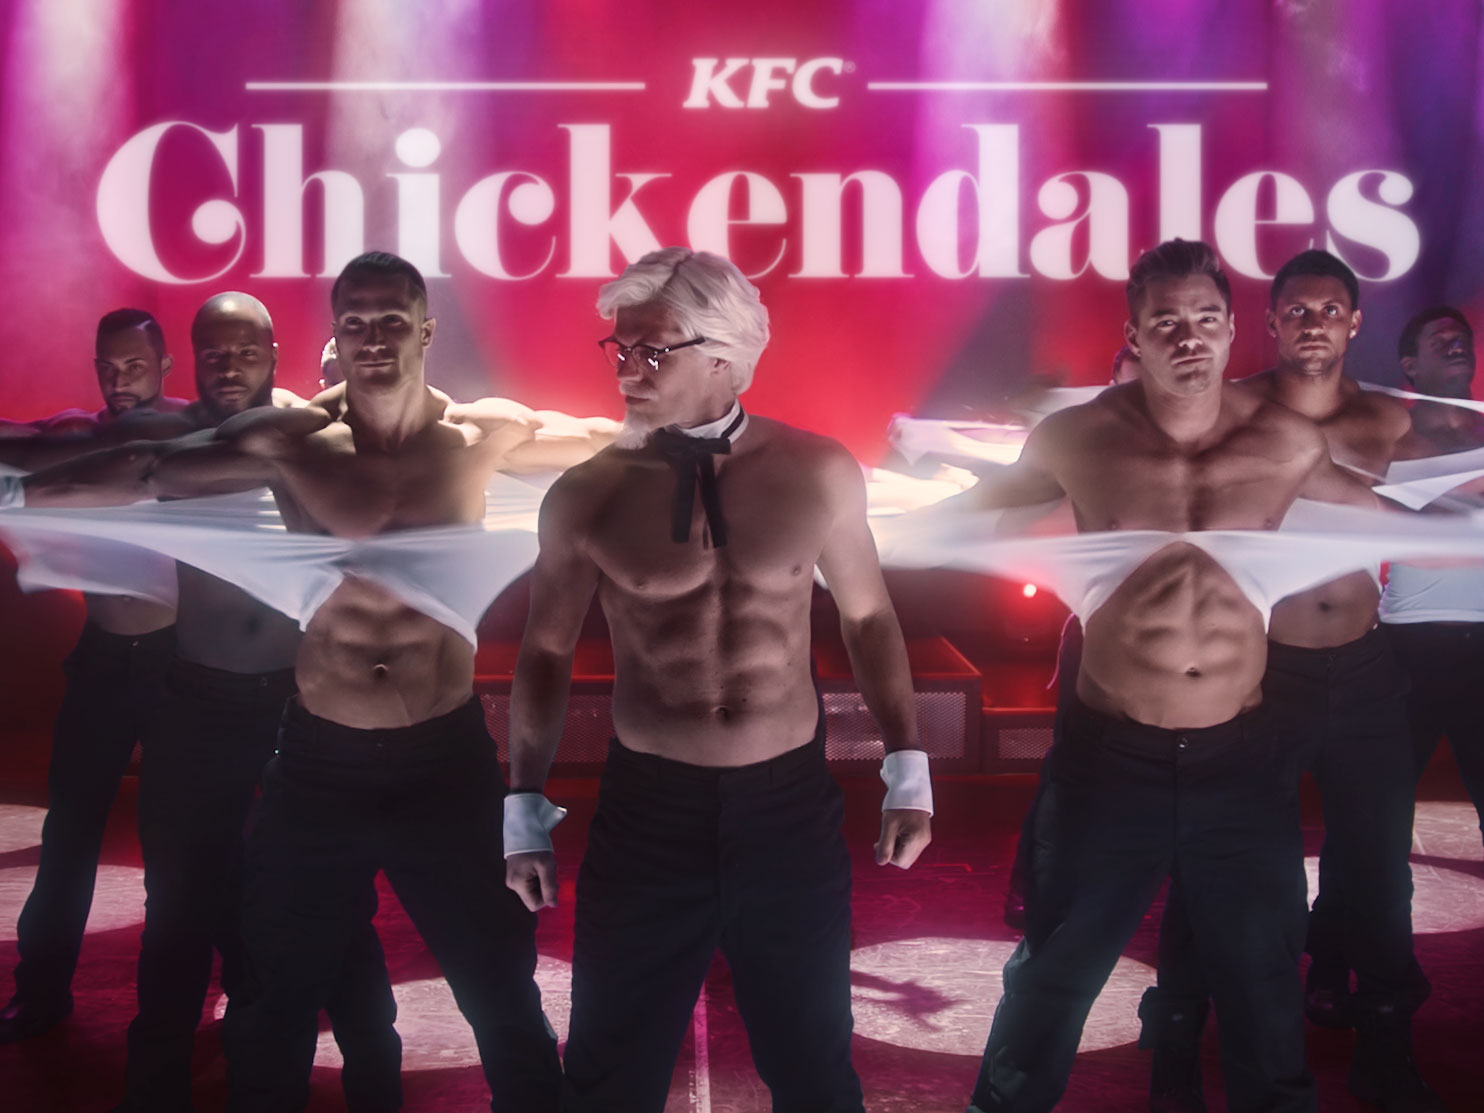 KFC's Mother's Day Gift to Moms Everywhere: 'Chickendales' Dancers